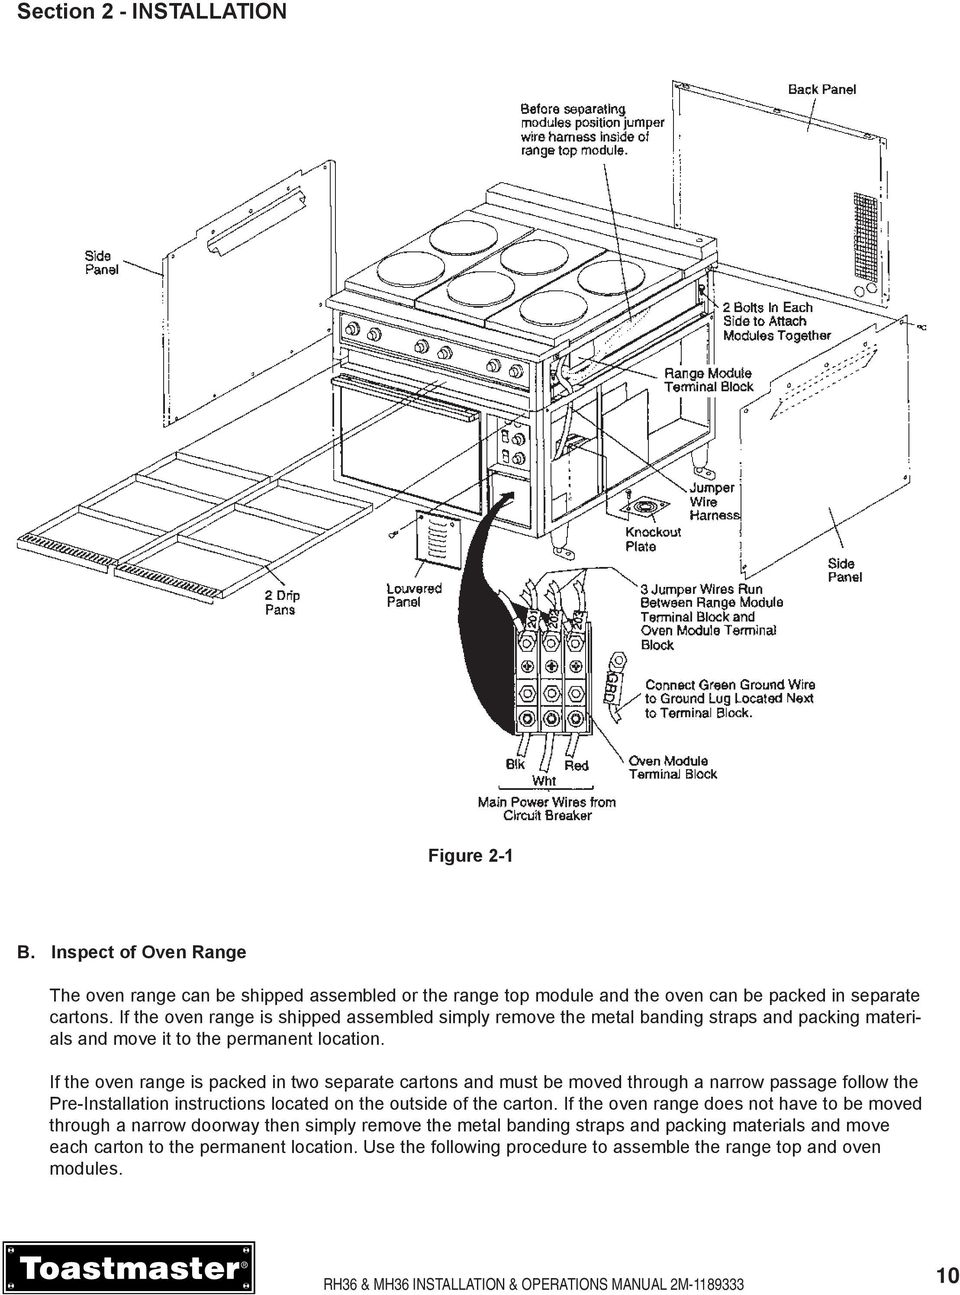 Oven Range Installation Operations Manual Model Rh36 Mh36 Wiring Diagram If The Is Packed In Two Separate Cartons And Must Be Moved Through A